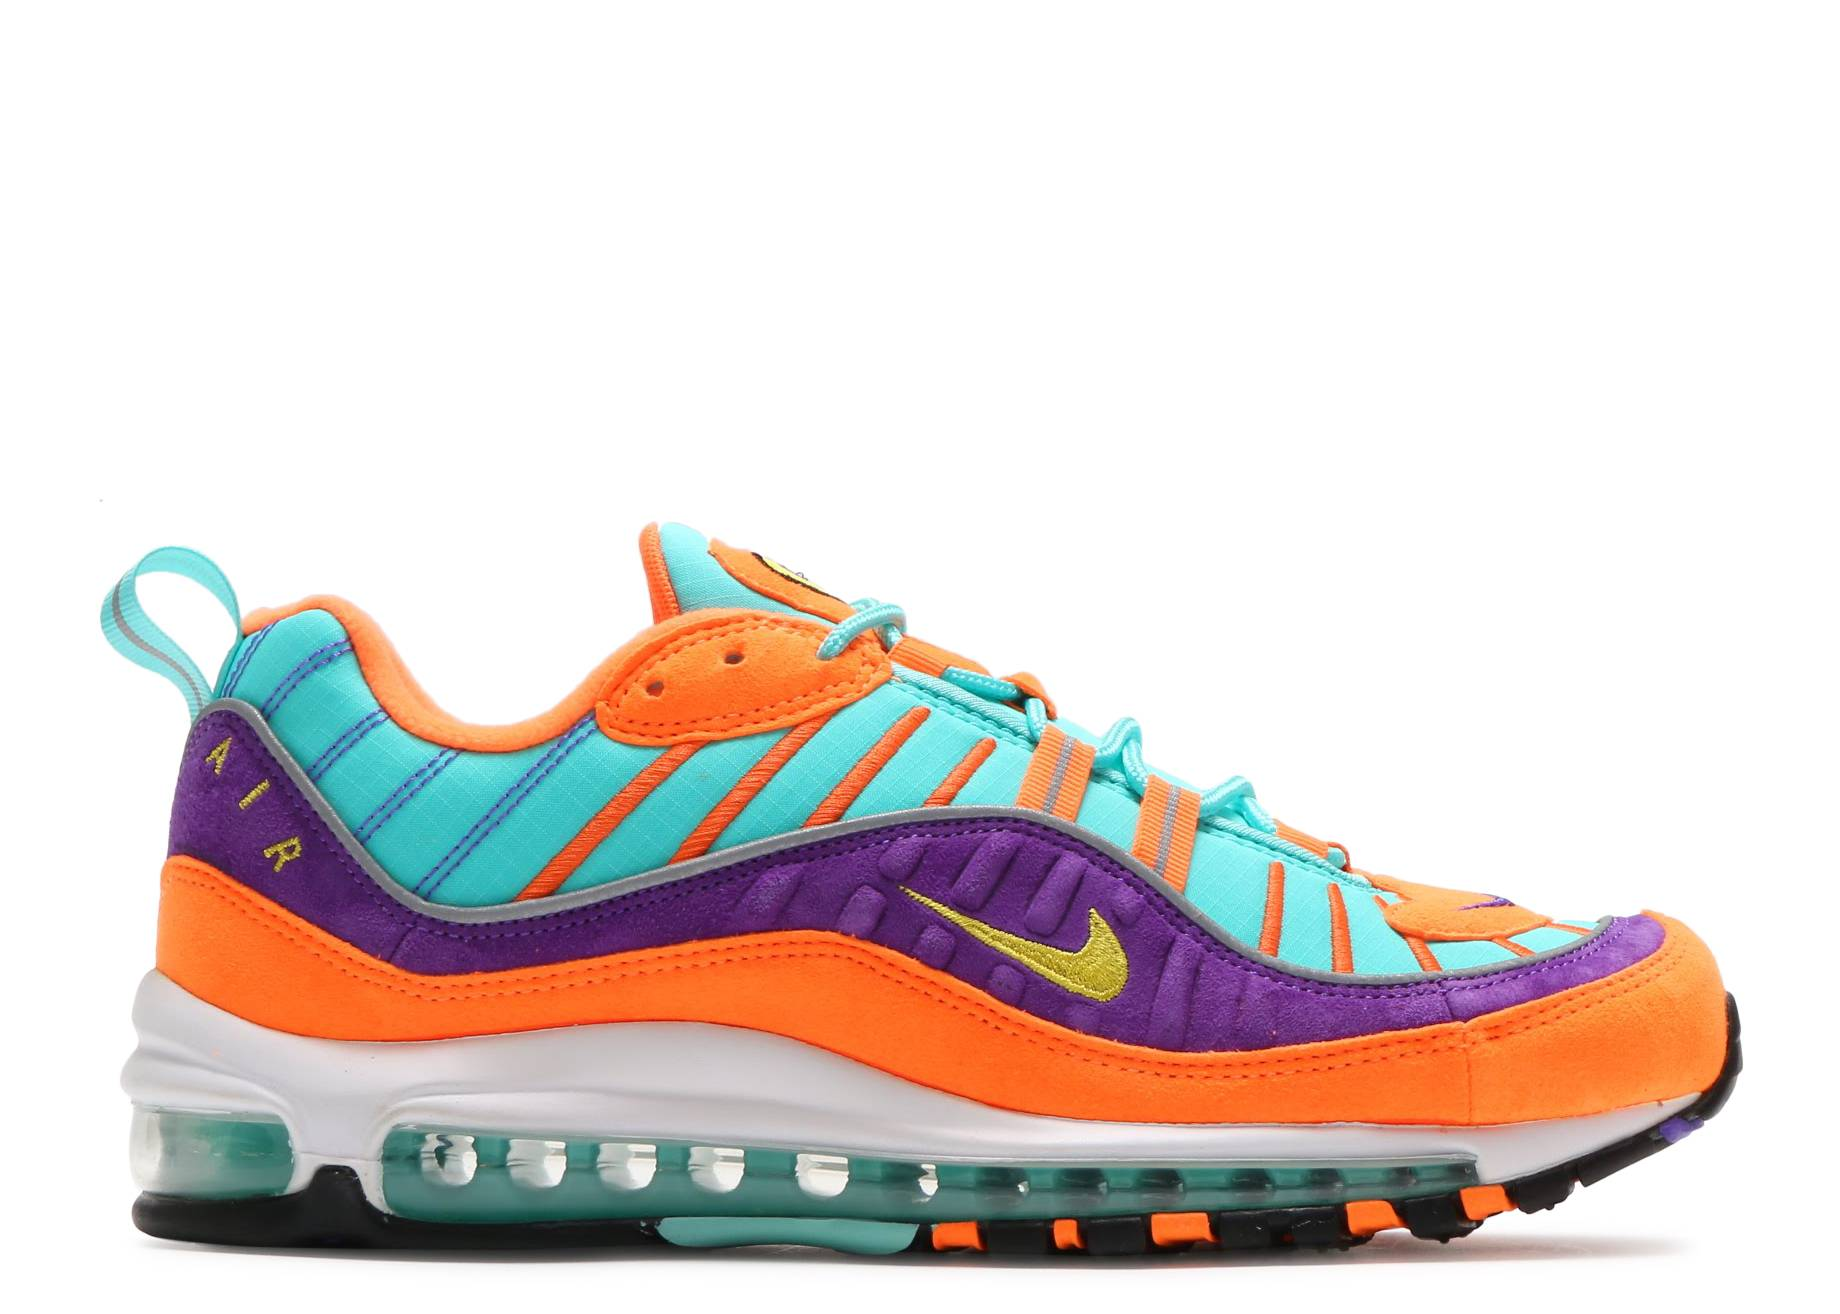 AIR MAX 98 QS - Nike - 924462 800 - cone tour yellow-hyper grape ... 5bc5c75a0